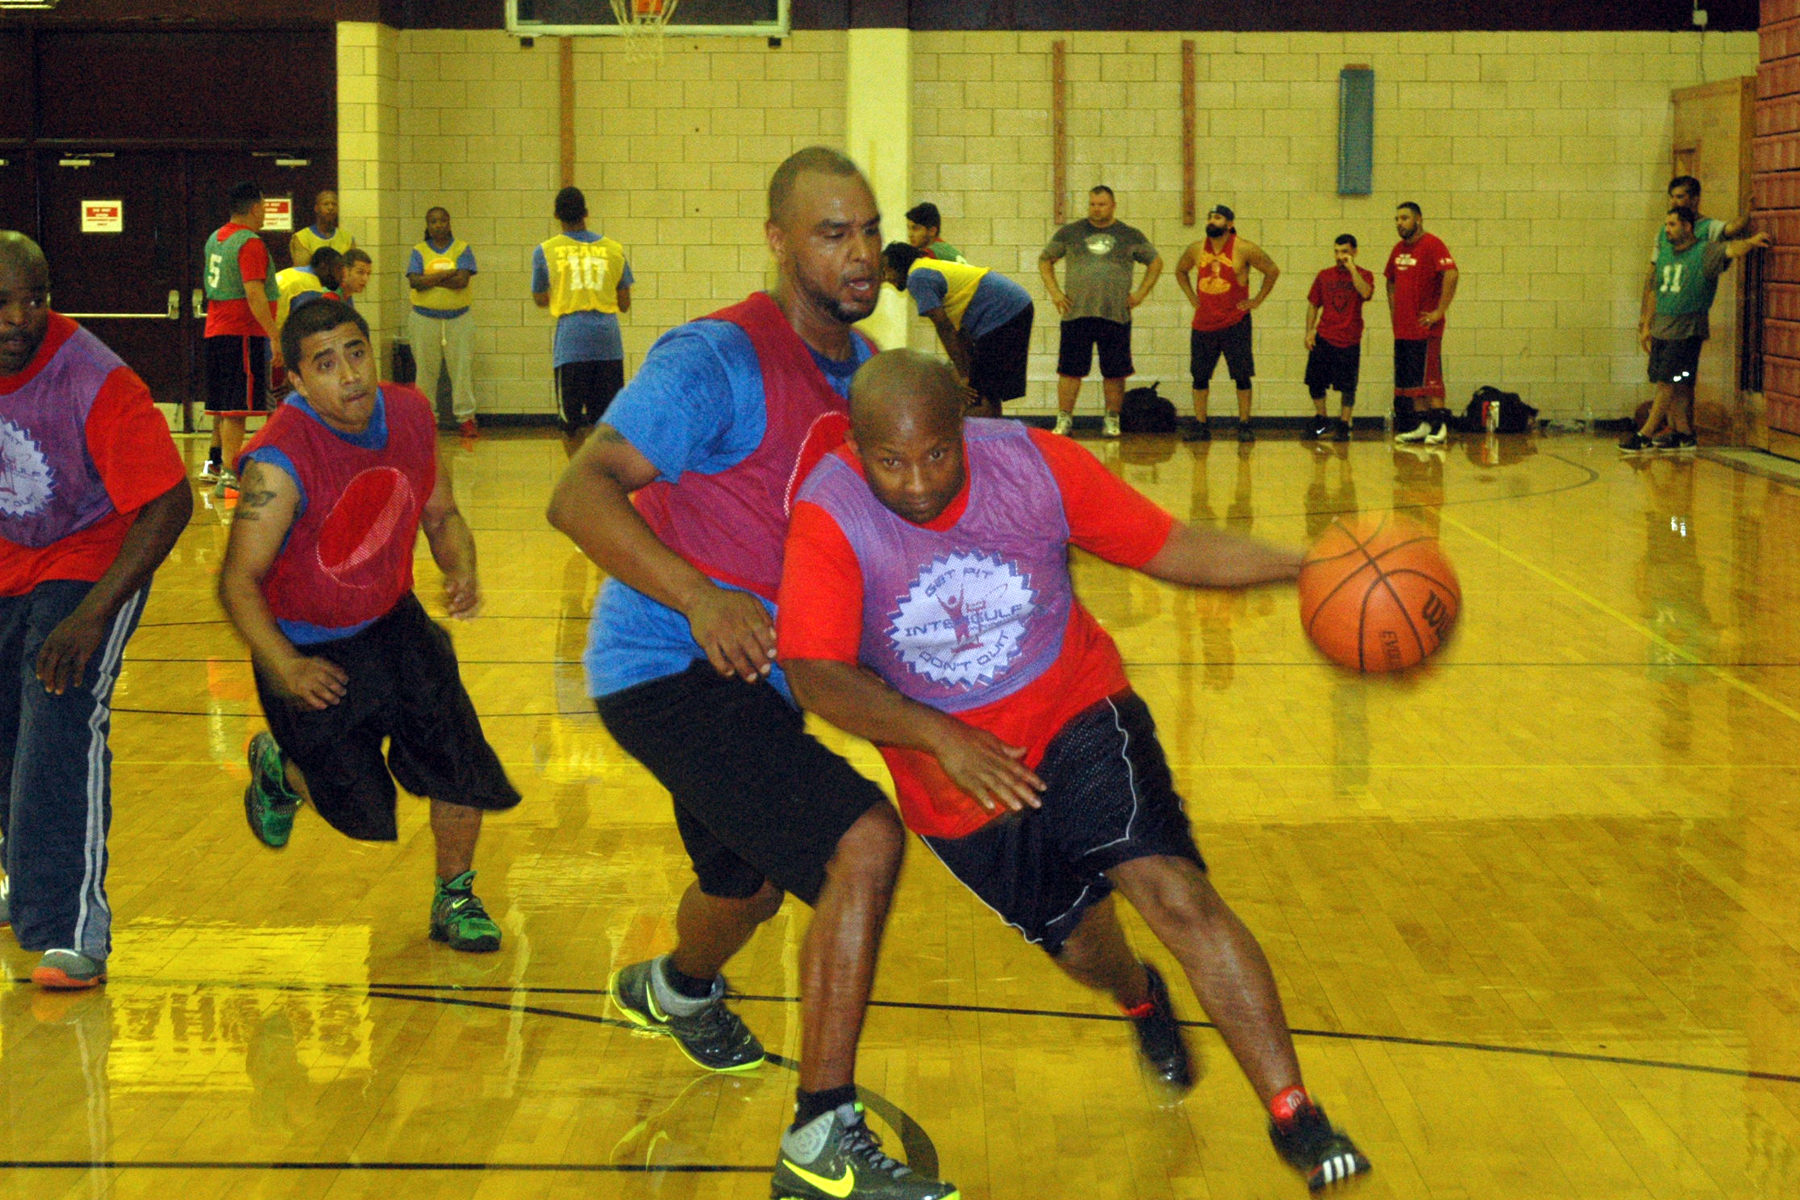 Basketball players chasing man dribbling basketball